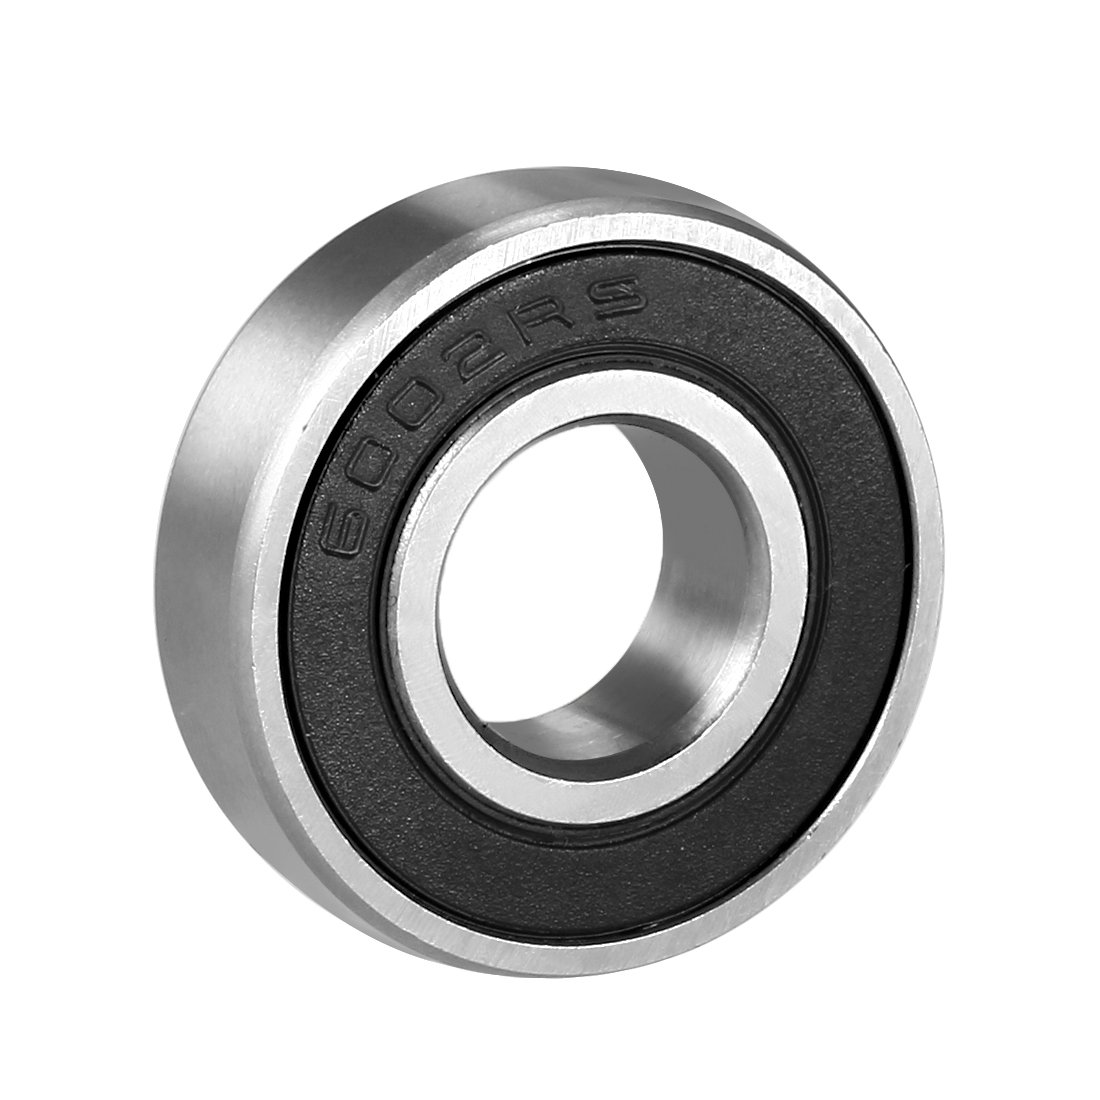 sourcingmap 6002RS Deep Groove Ball Bearing Single Sealed 160102, 15mm x 32mm x 9mm Chrome Steel Bearings (Pack of 1) a18051100ux0052